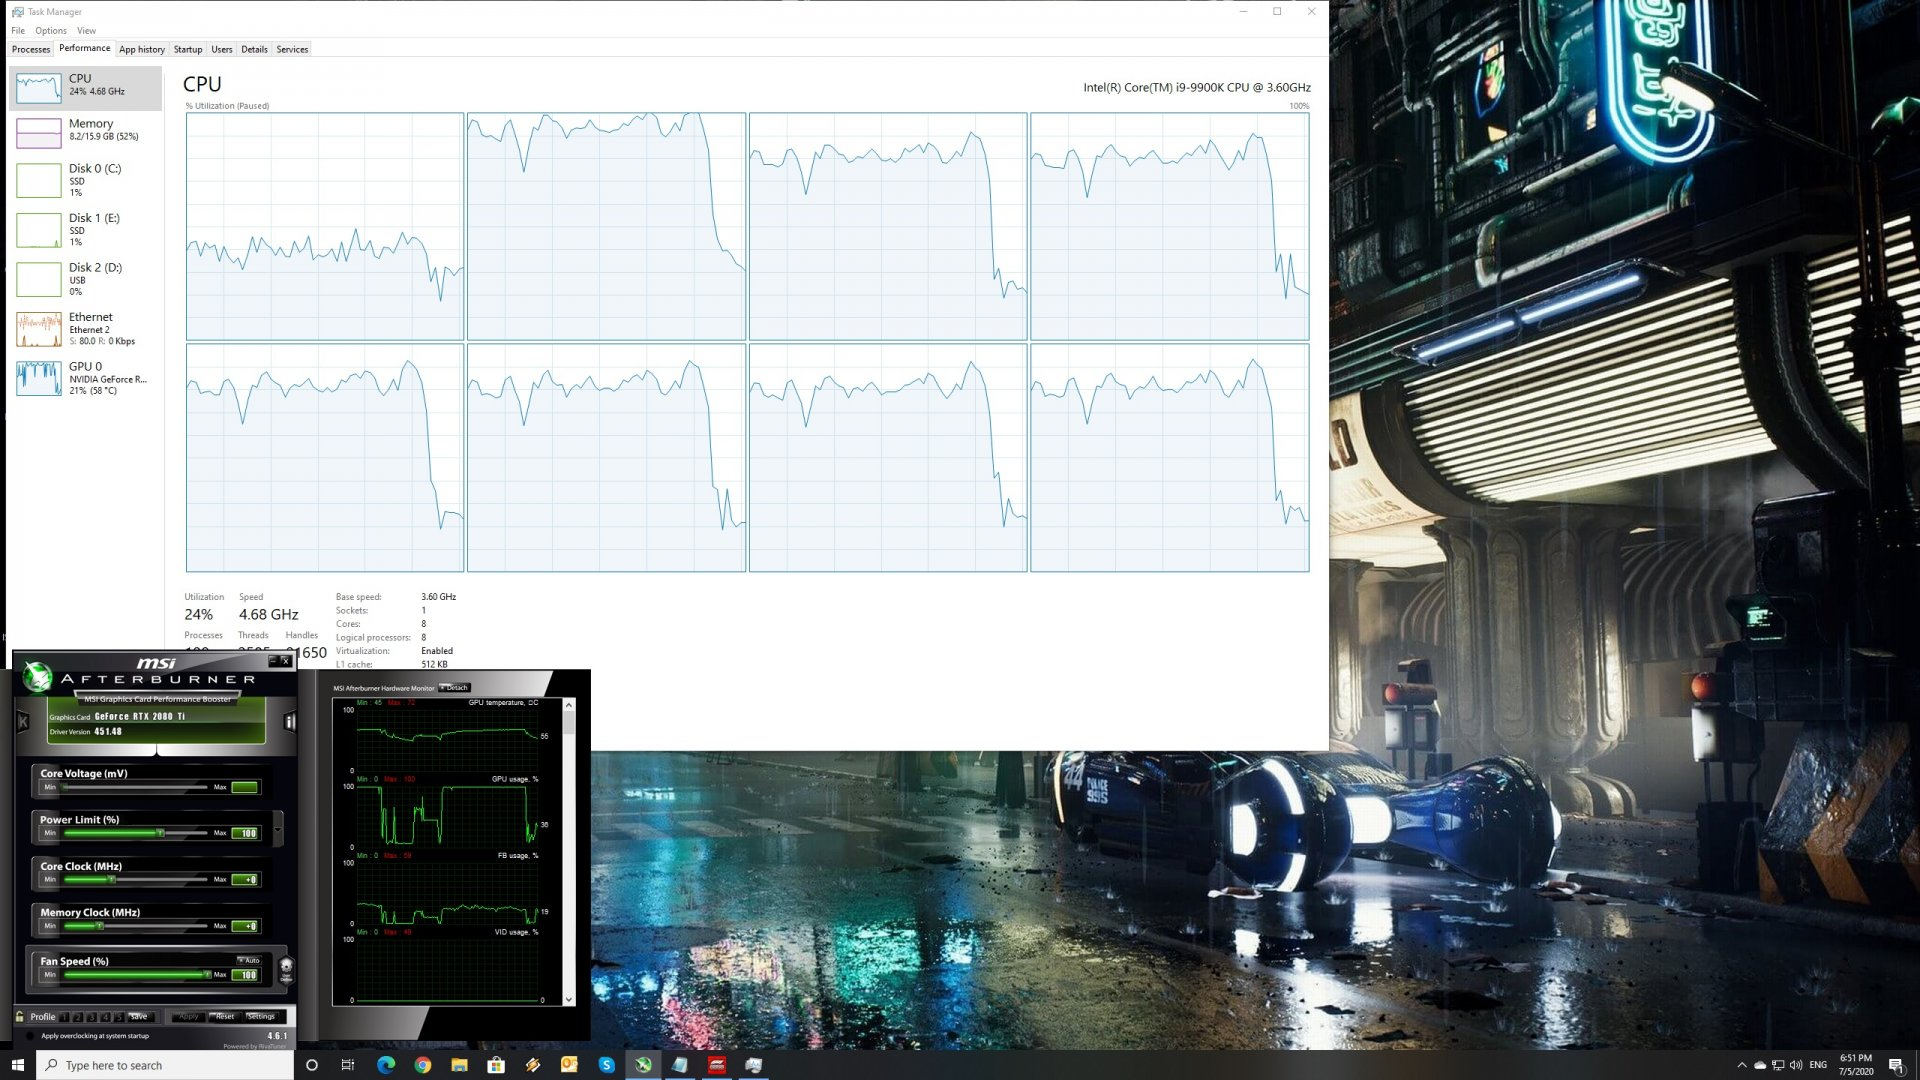 F1 2020 benchmarks CPU scaling